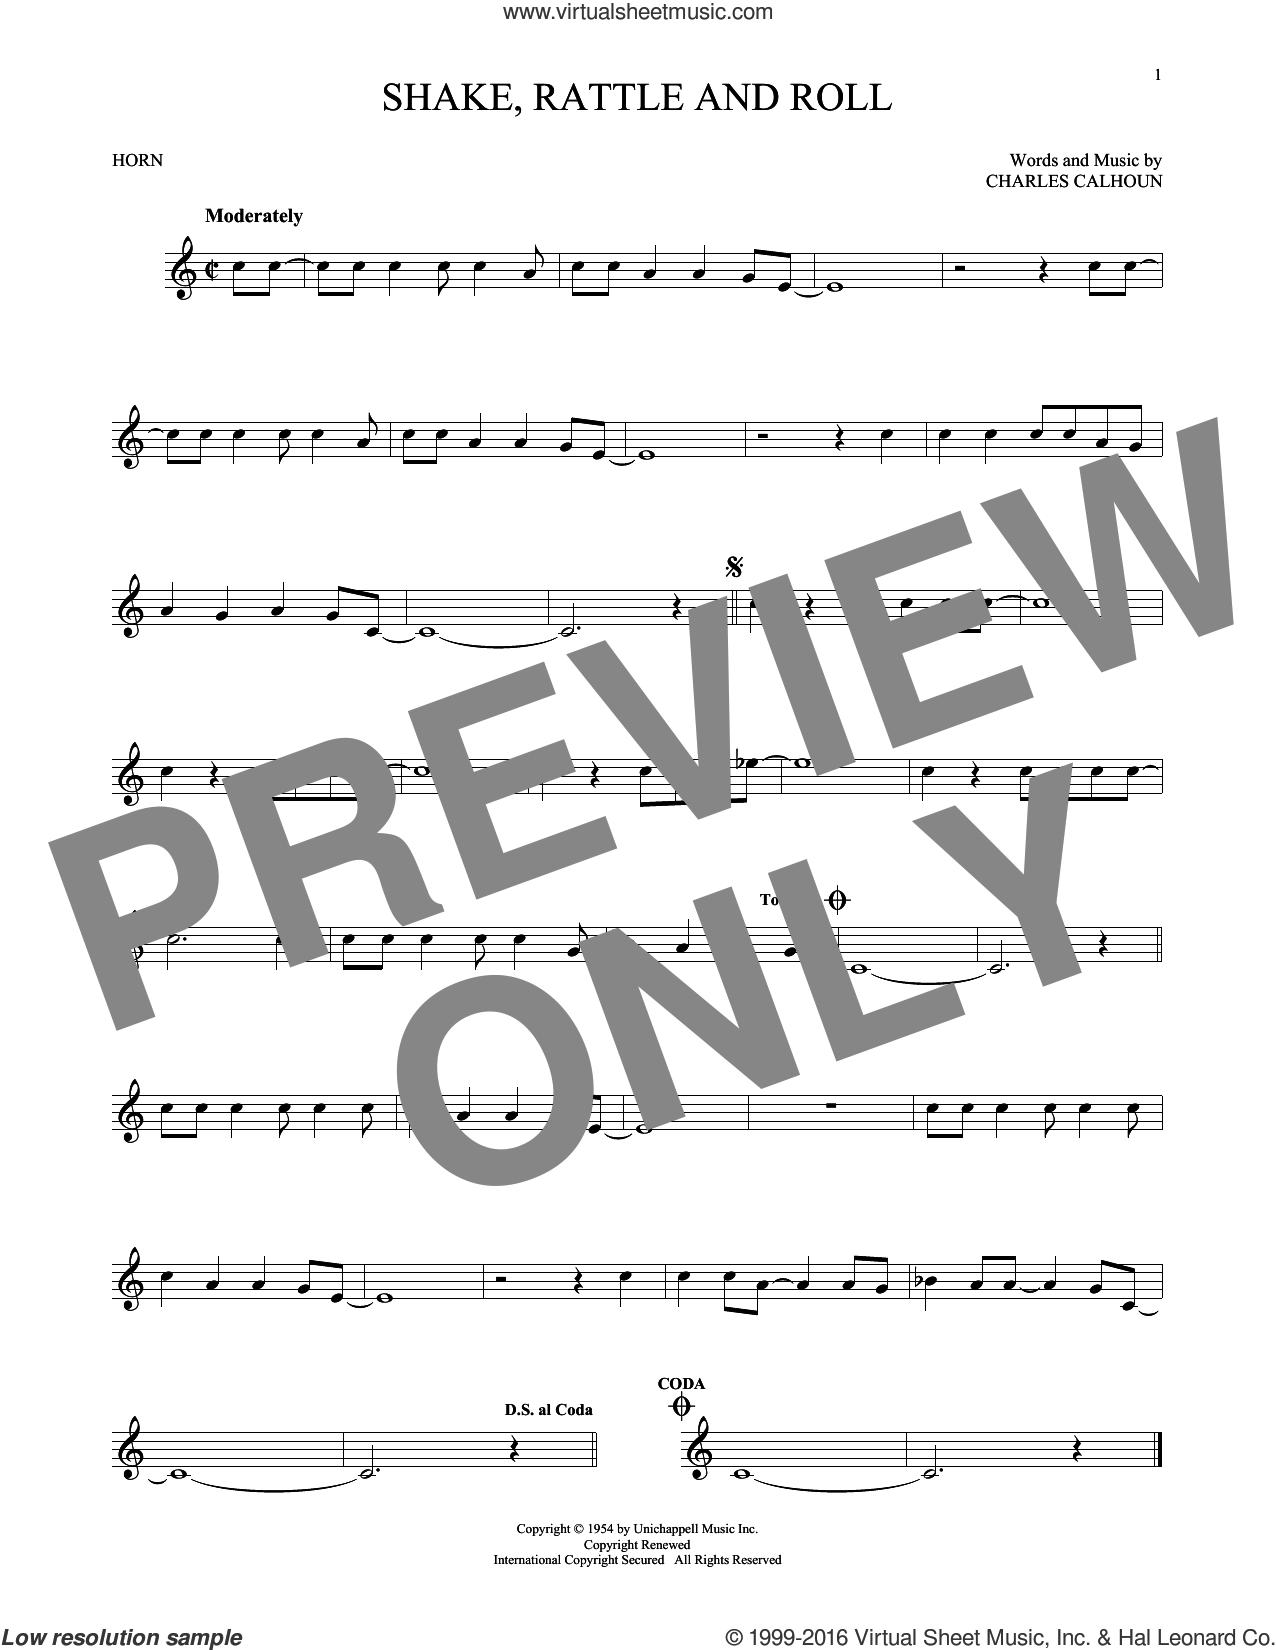 Shake, Rattle And Roll sheet music for horn solo by Bill Haley & His Comets, Arthur Conley and Charles Calhoun, intermediate horn. Score Image Preview.